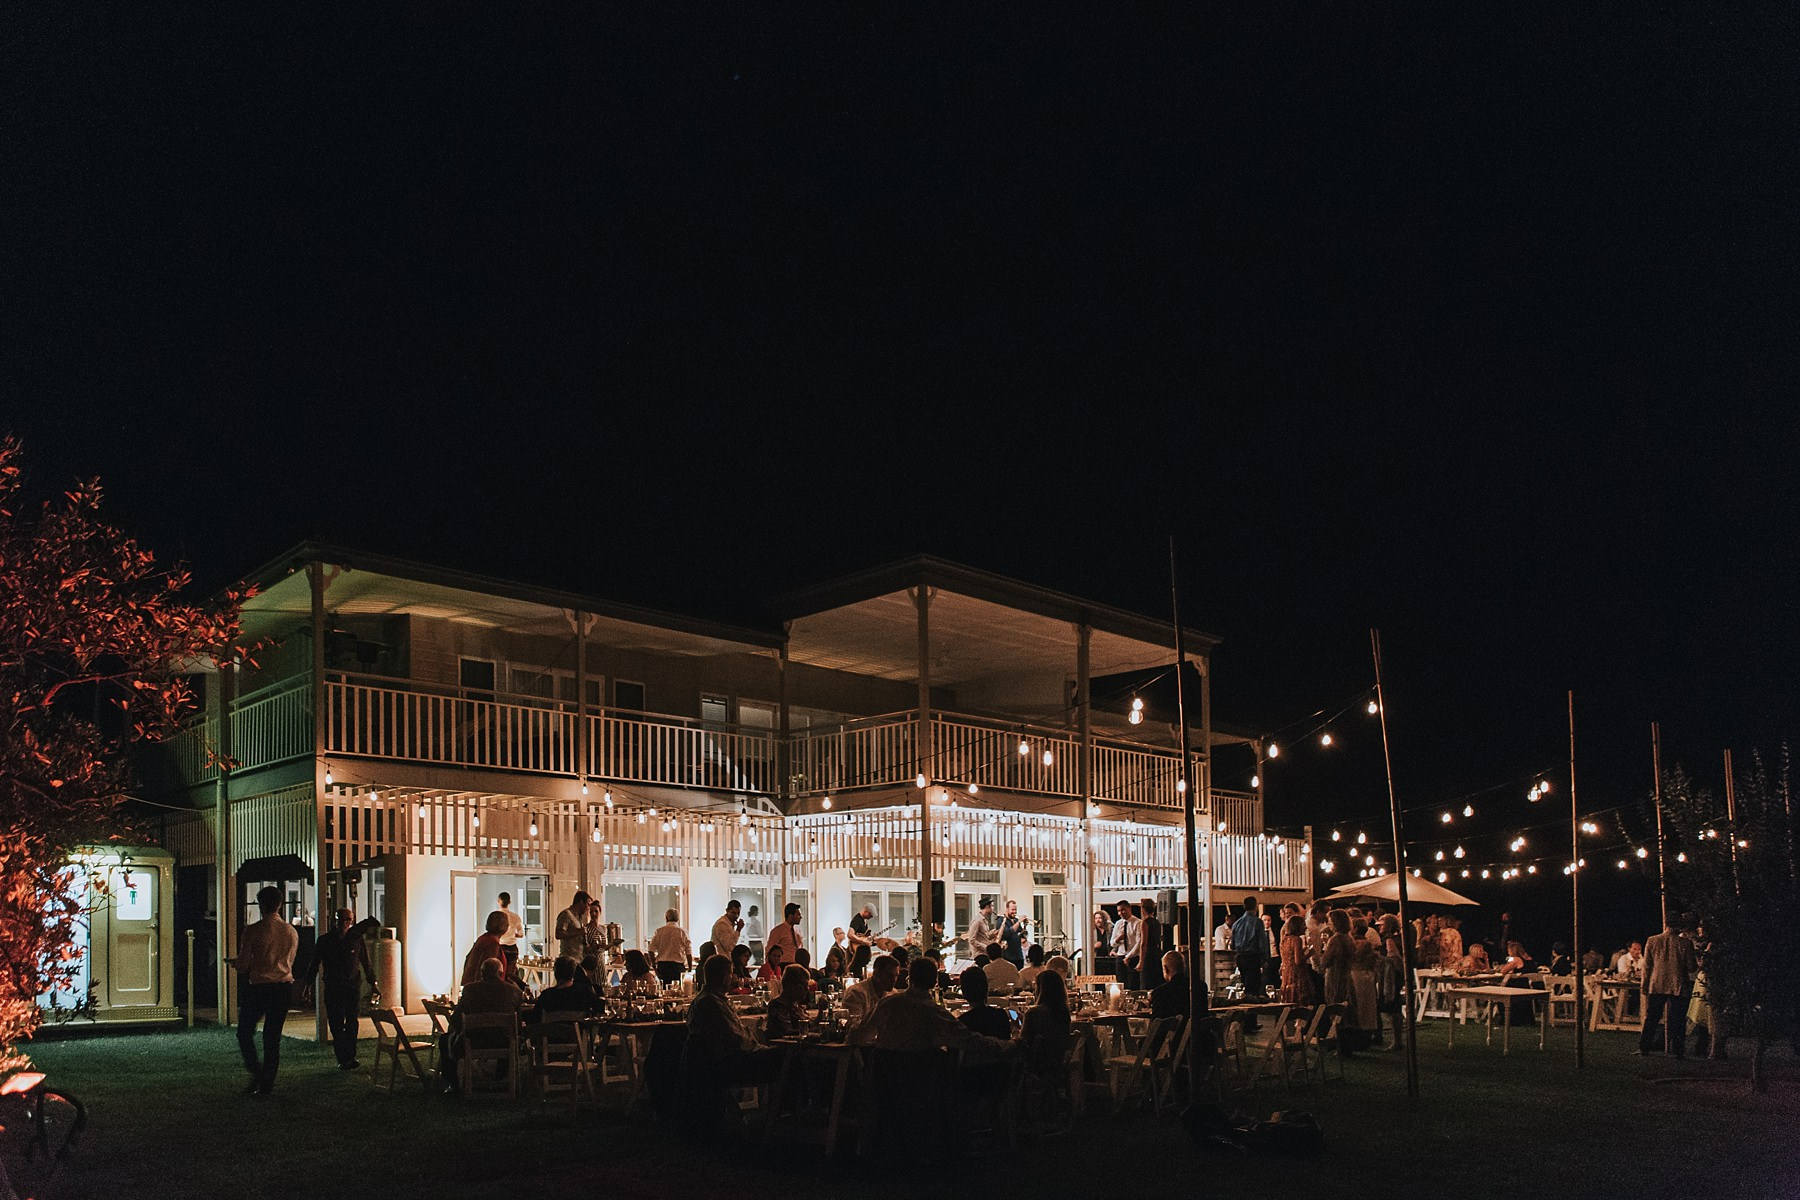 cornwallis house at night during wedding